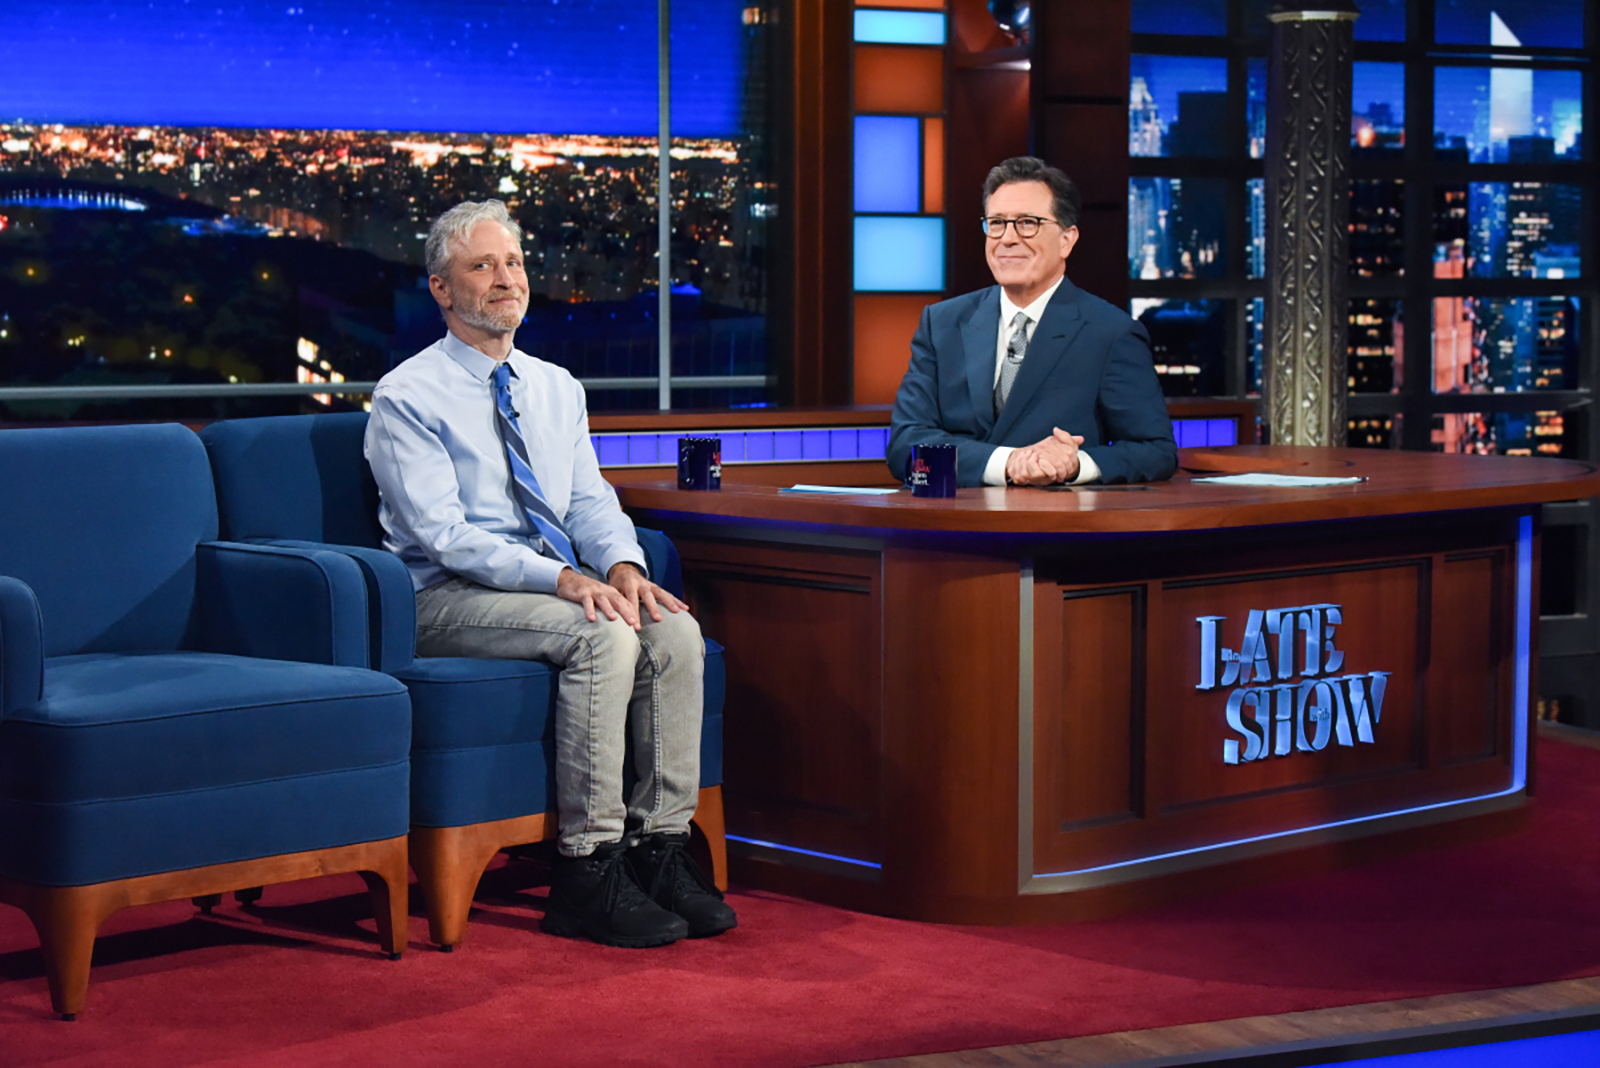 'So… how ya been?': Stephen Colbert welcomes an audience back to 'The Late Show'